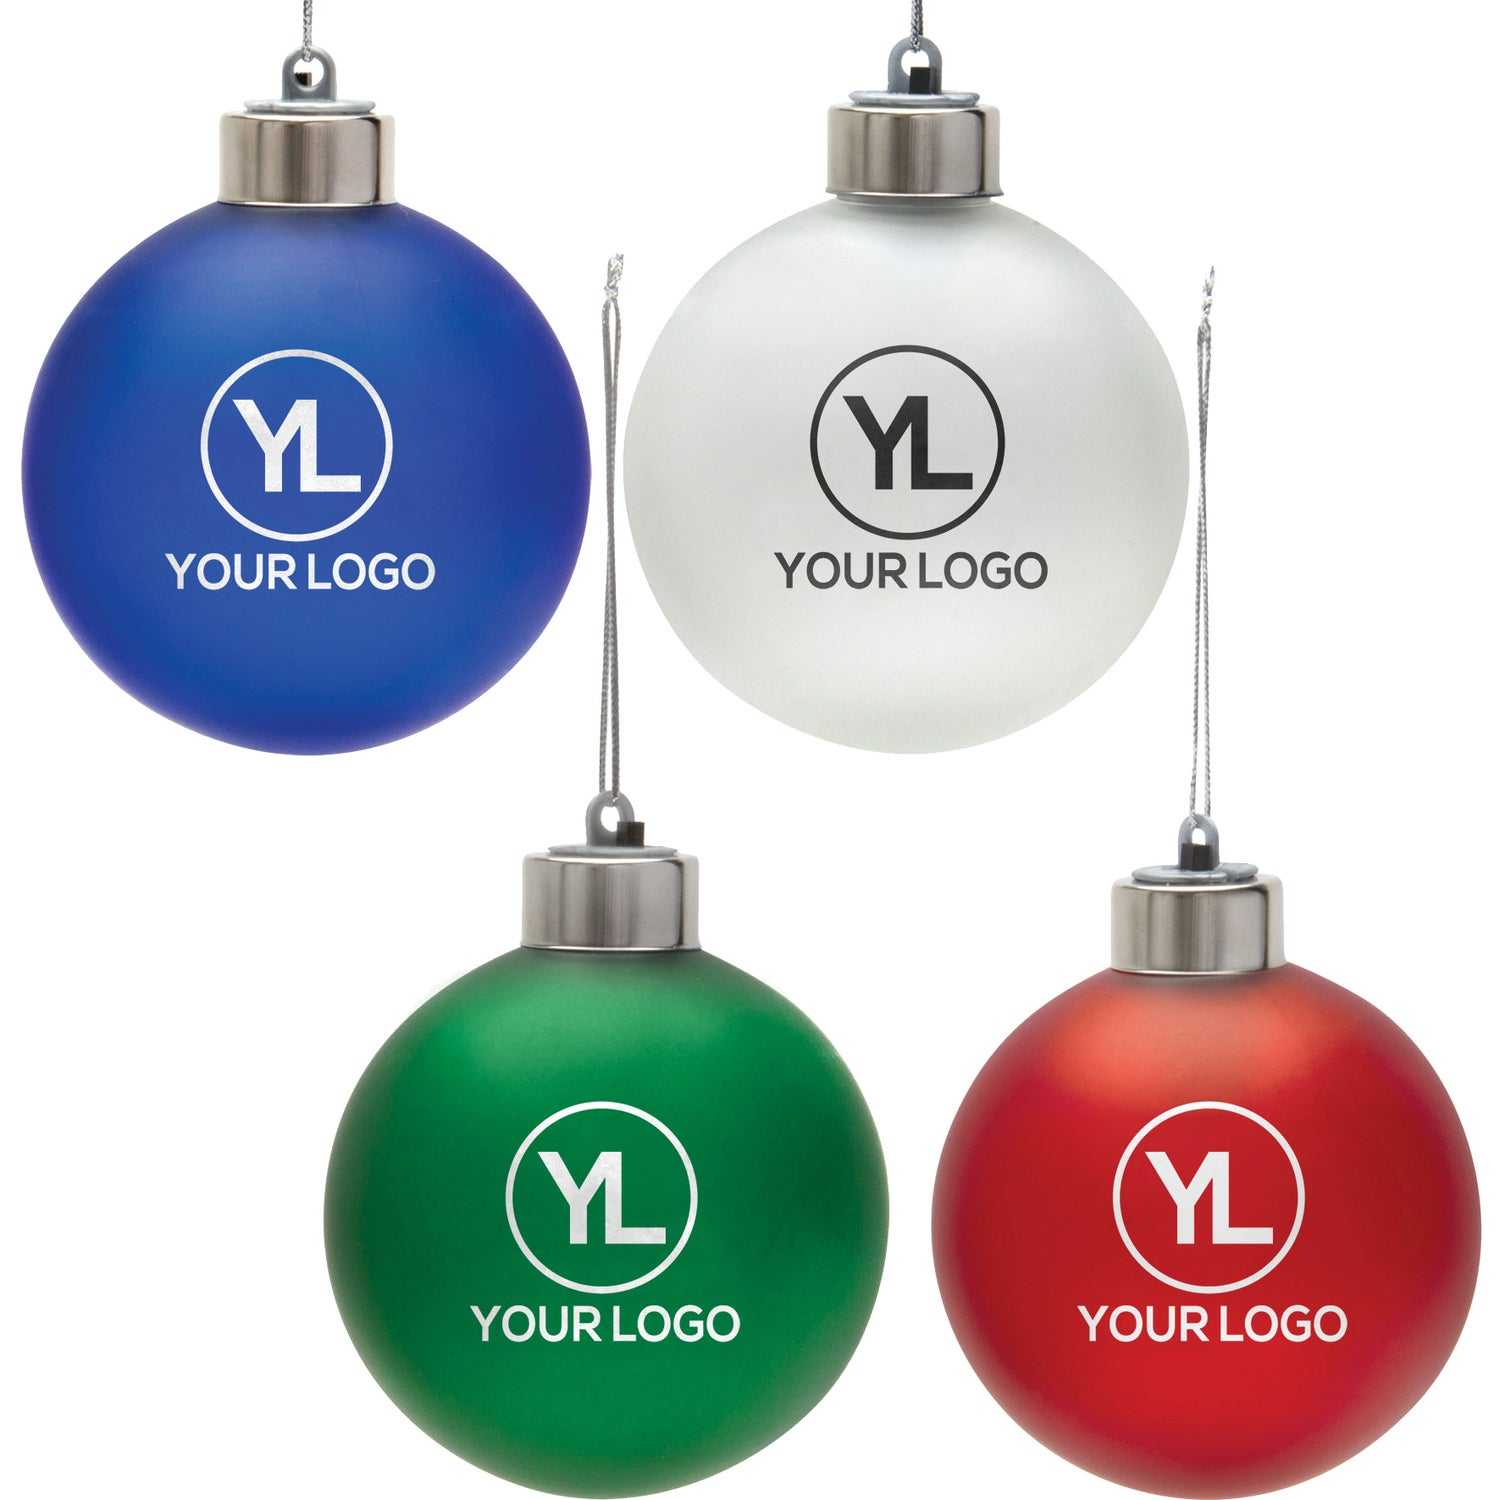 group photo light up shatter resistant ornament imprinted